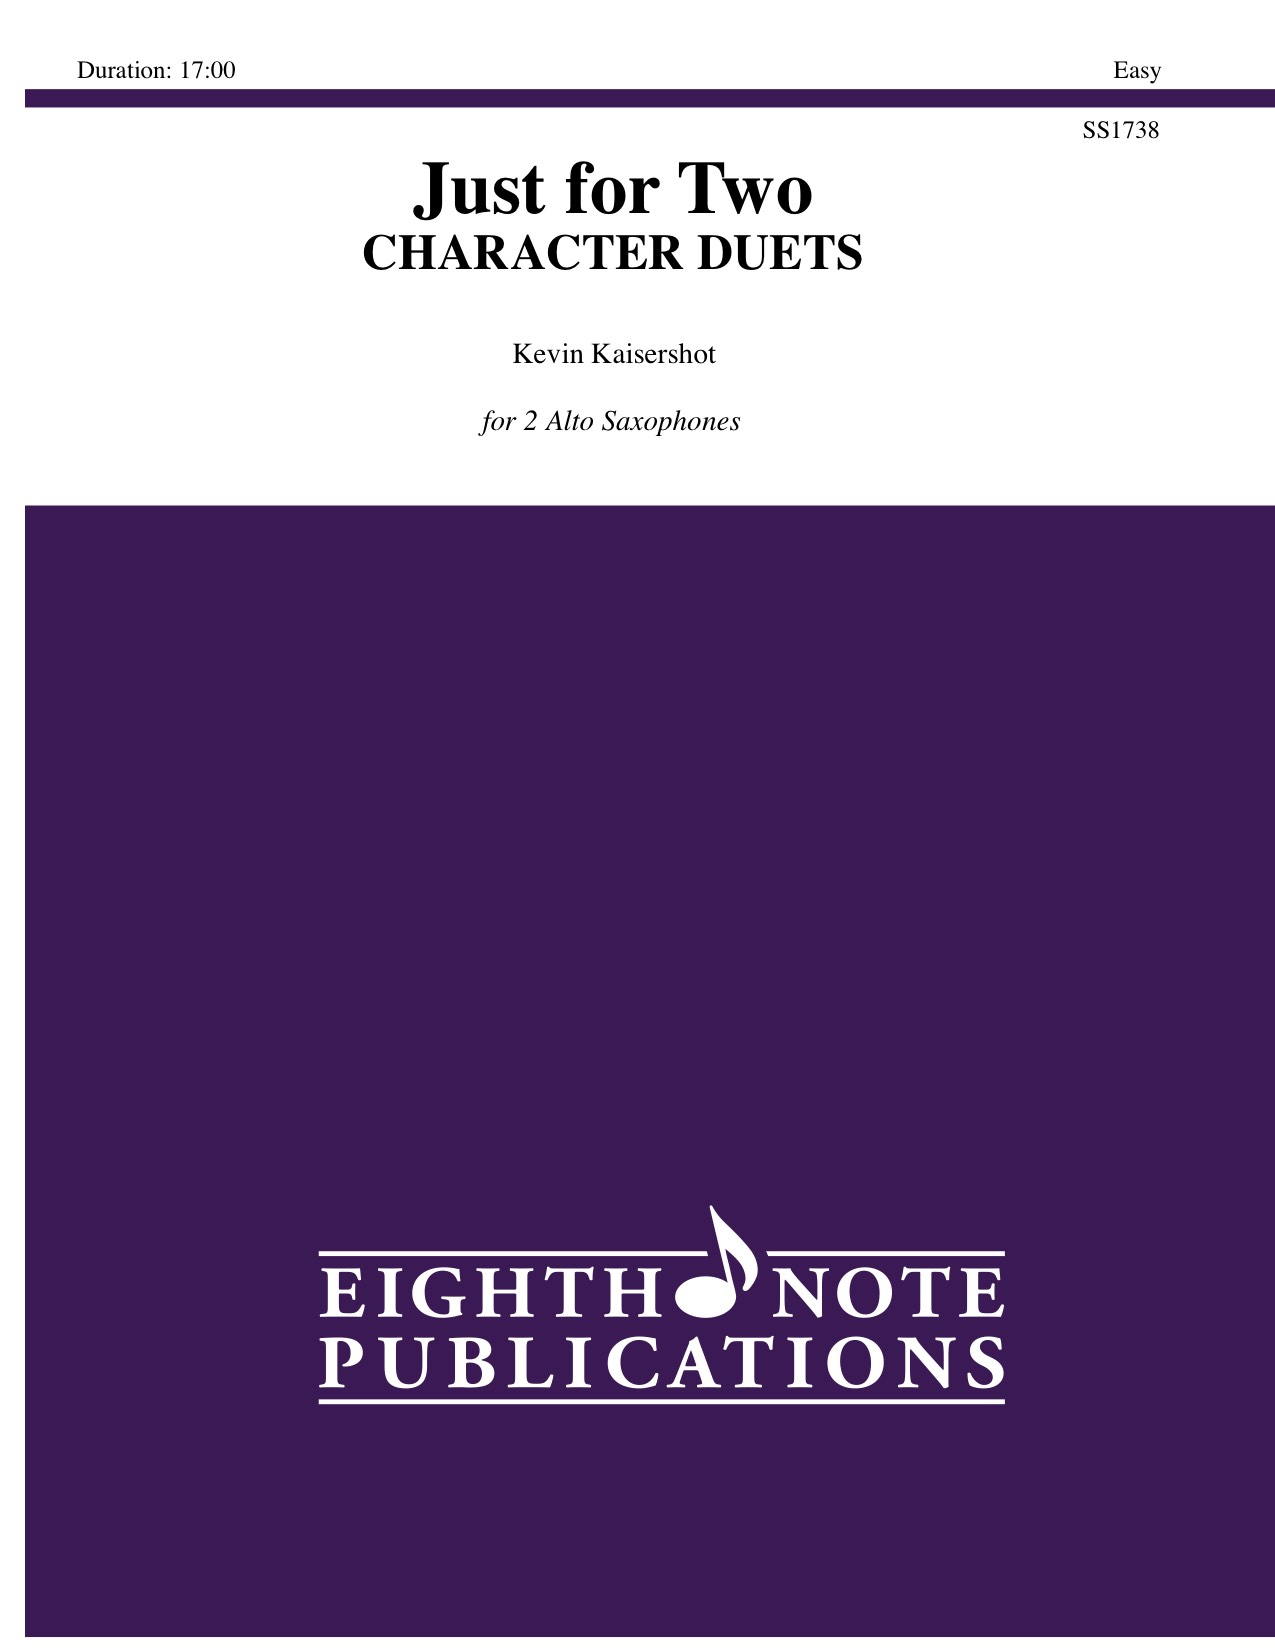 Just for Two - CHARACTER DUETS - Kevin Kaisershot